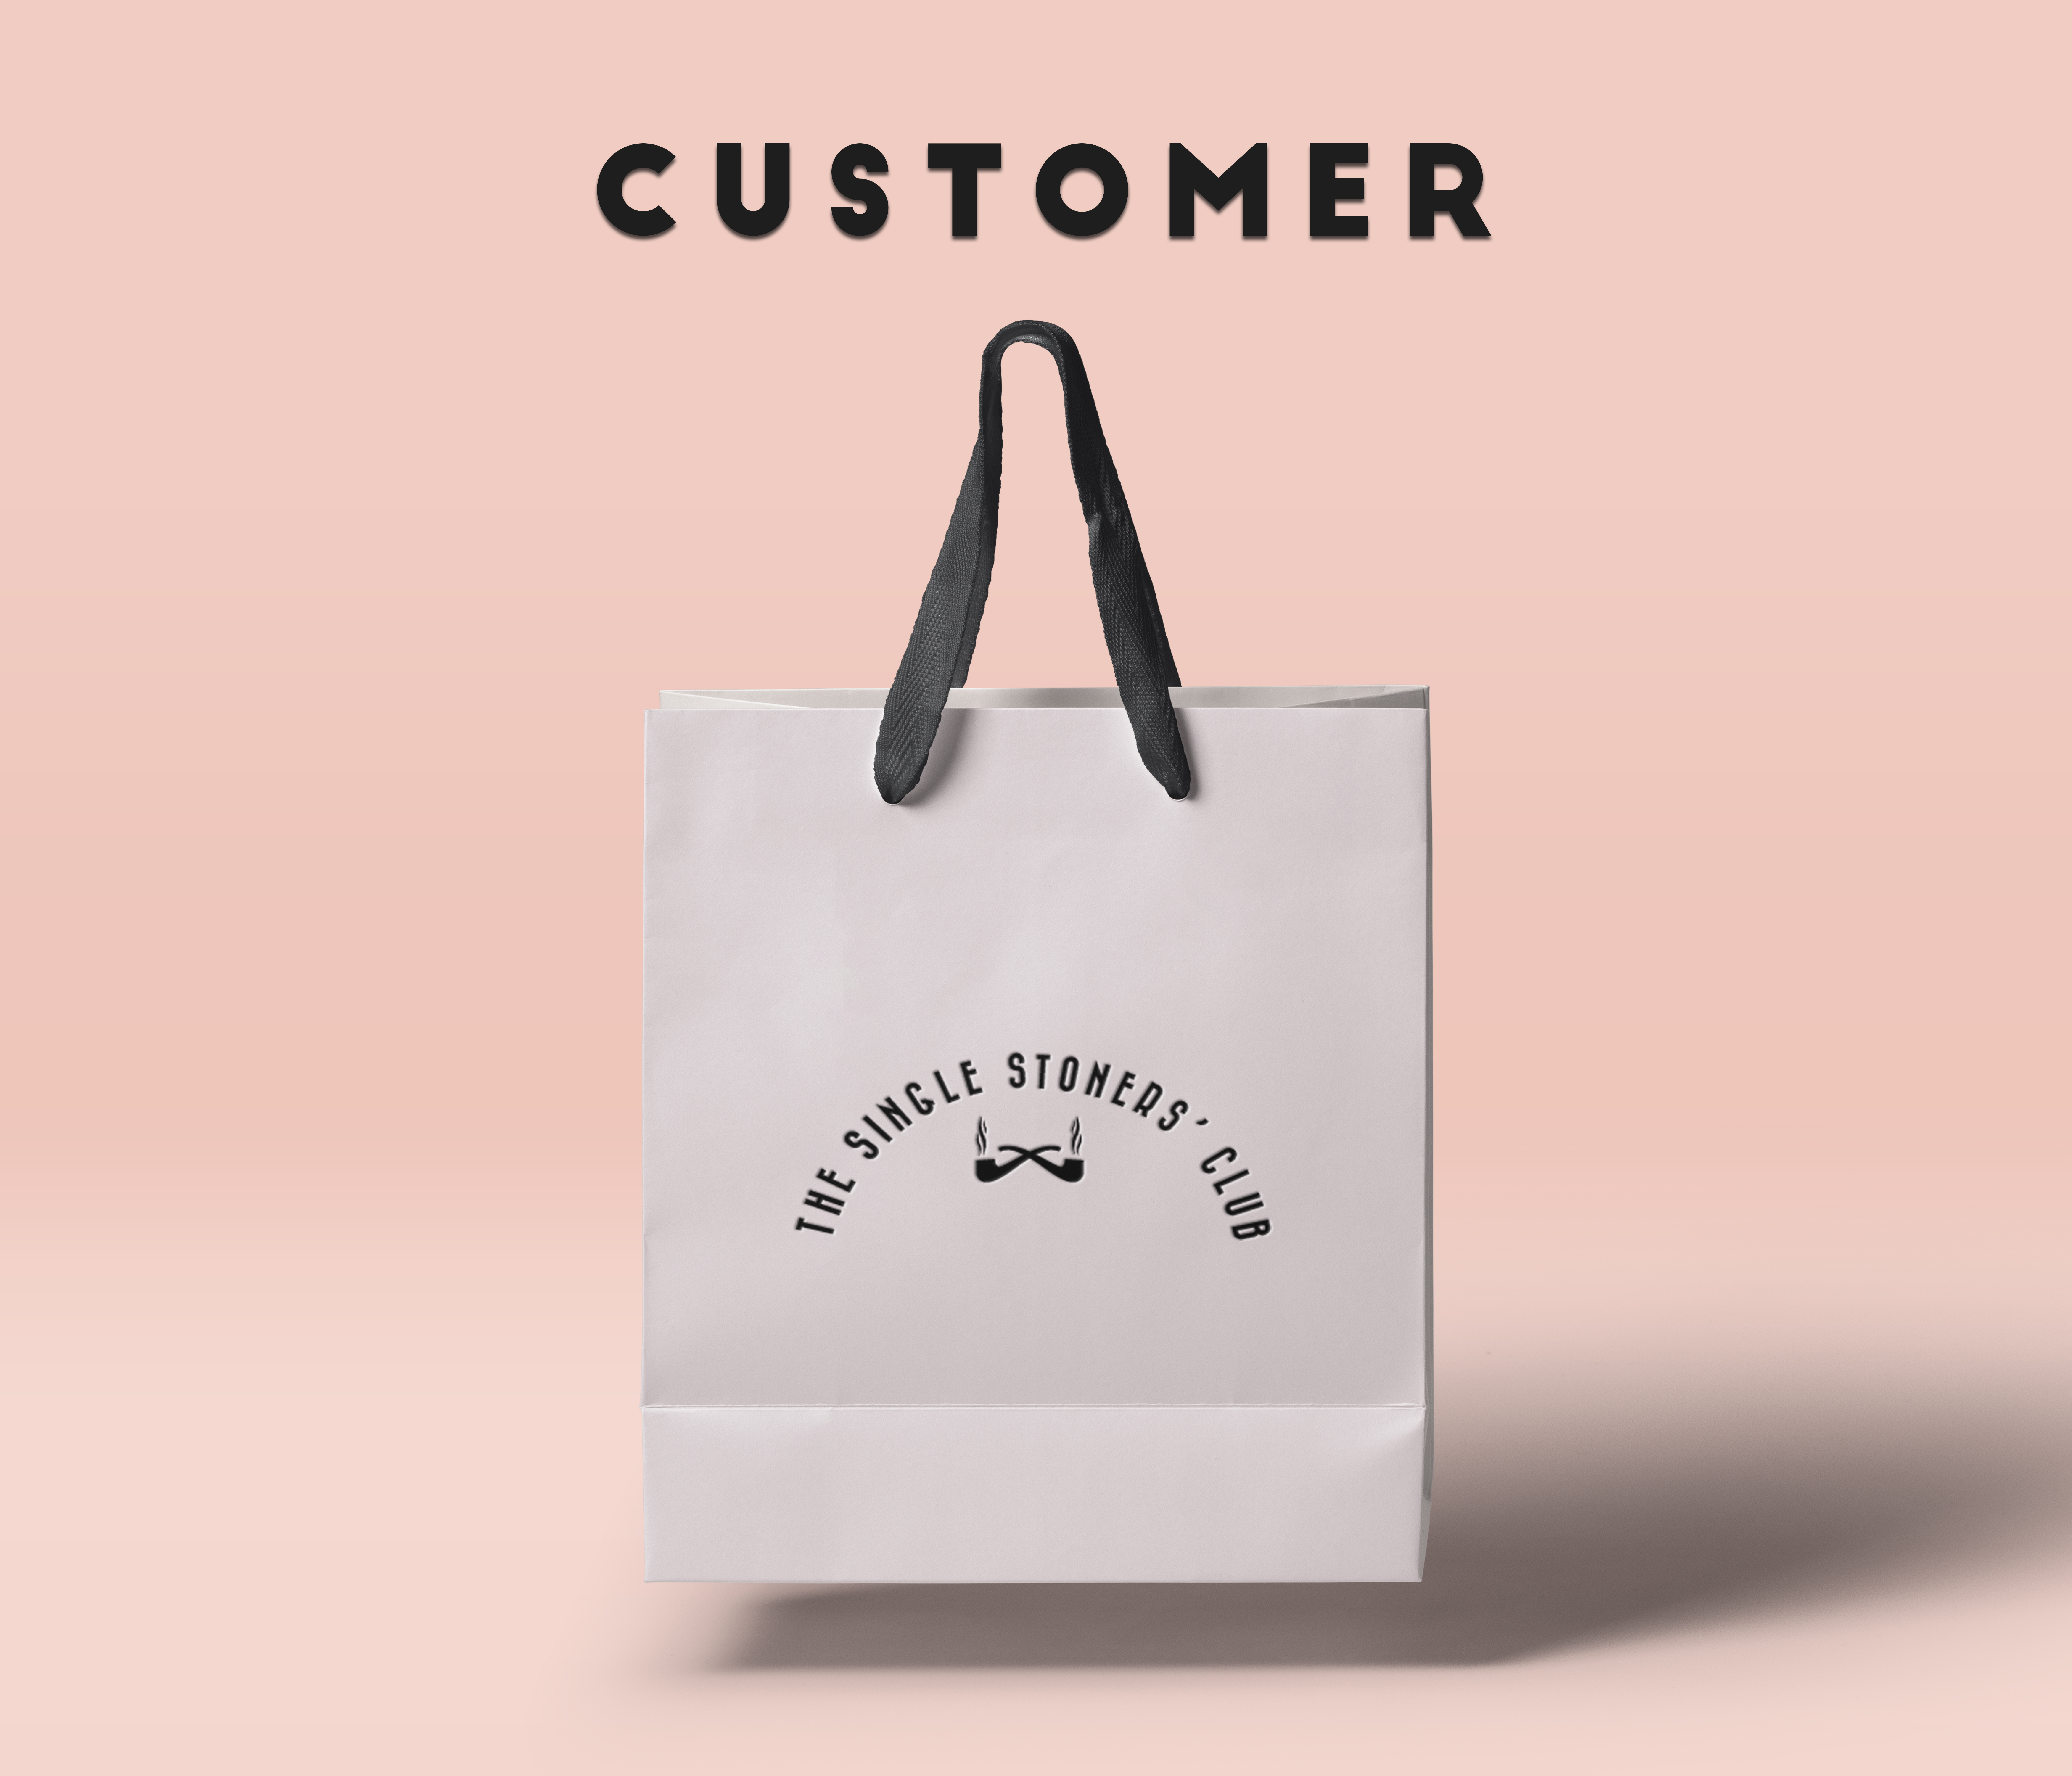 customer_bag_final.jpg